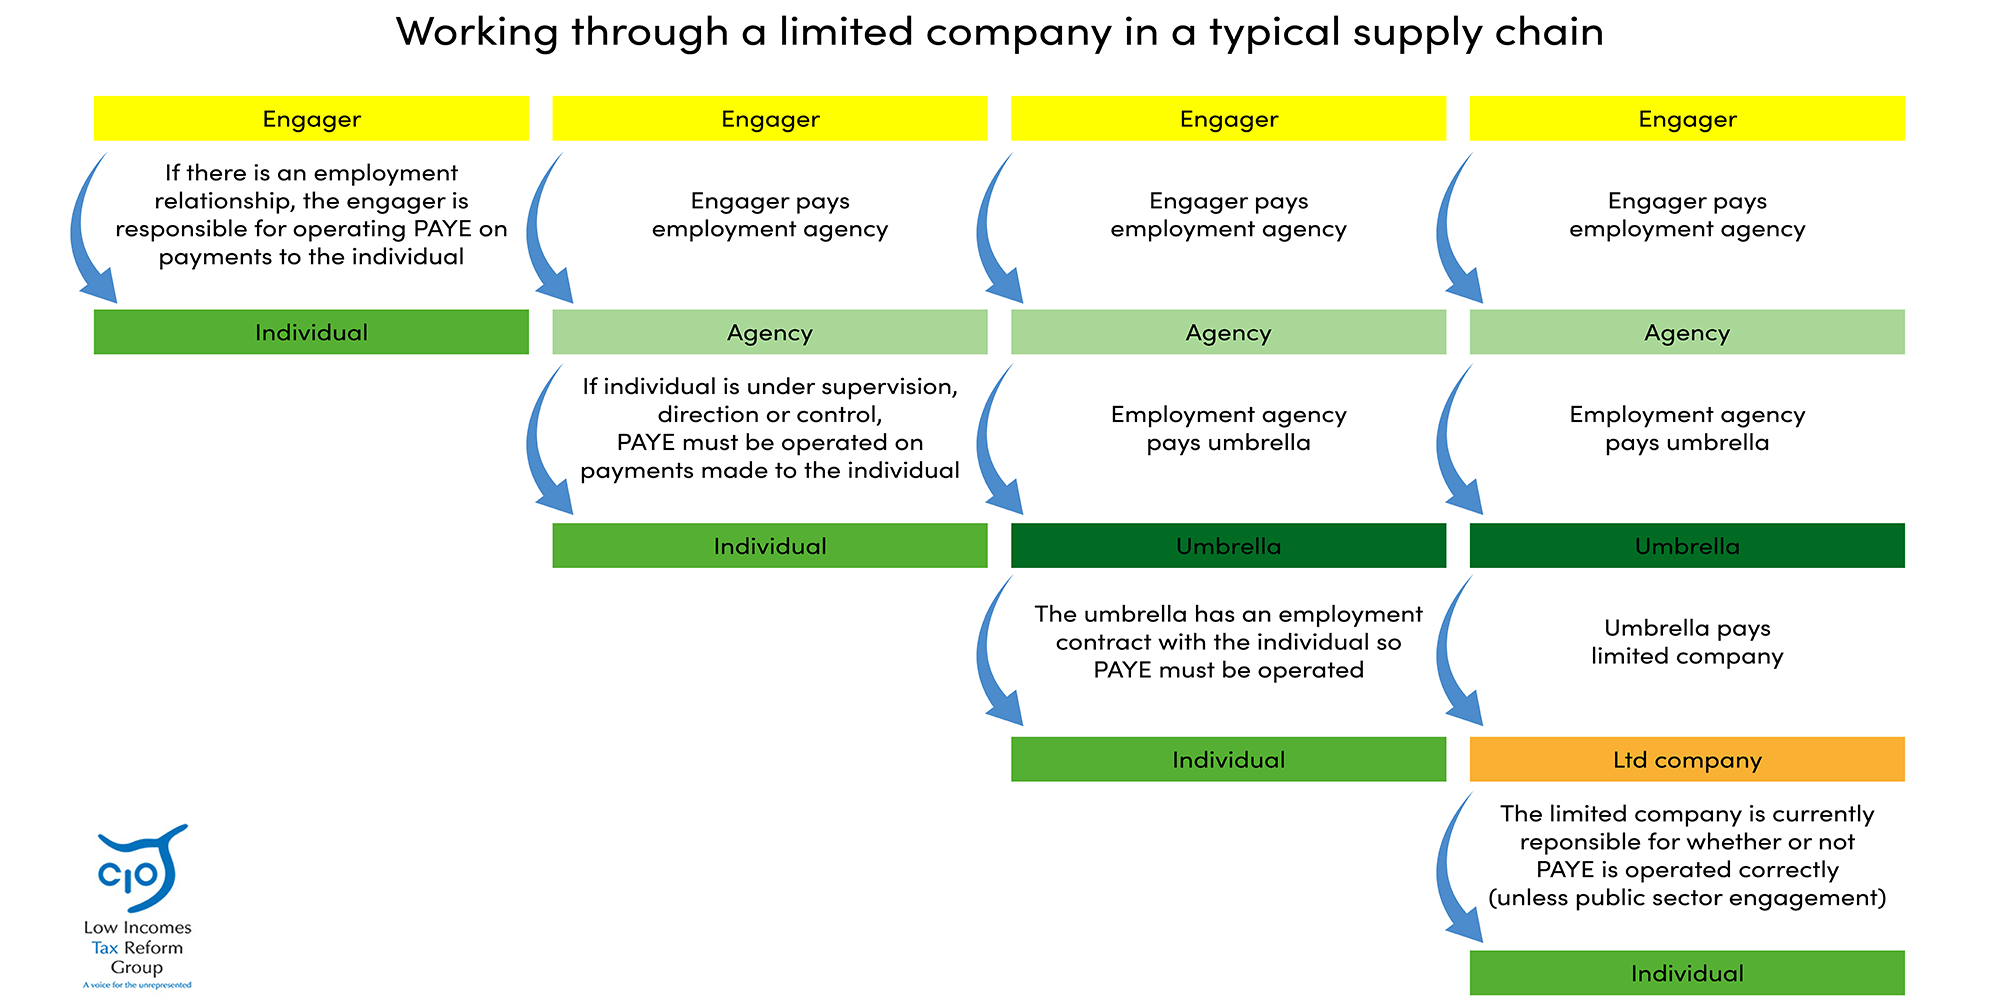 Illustration working through a limited company in a typical supply chain